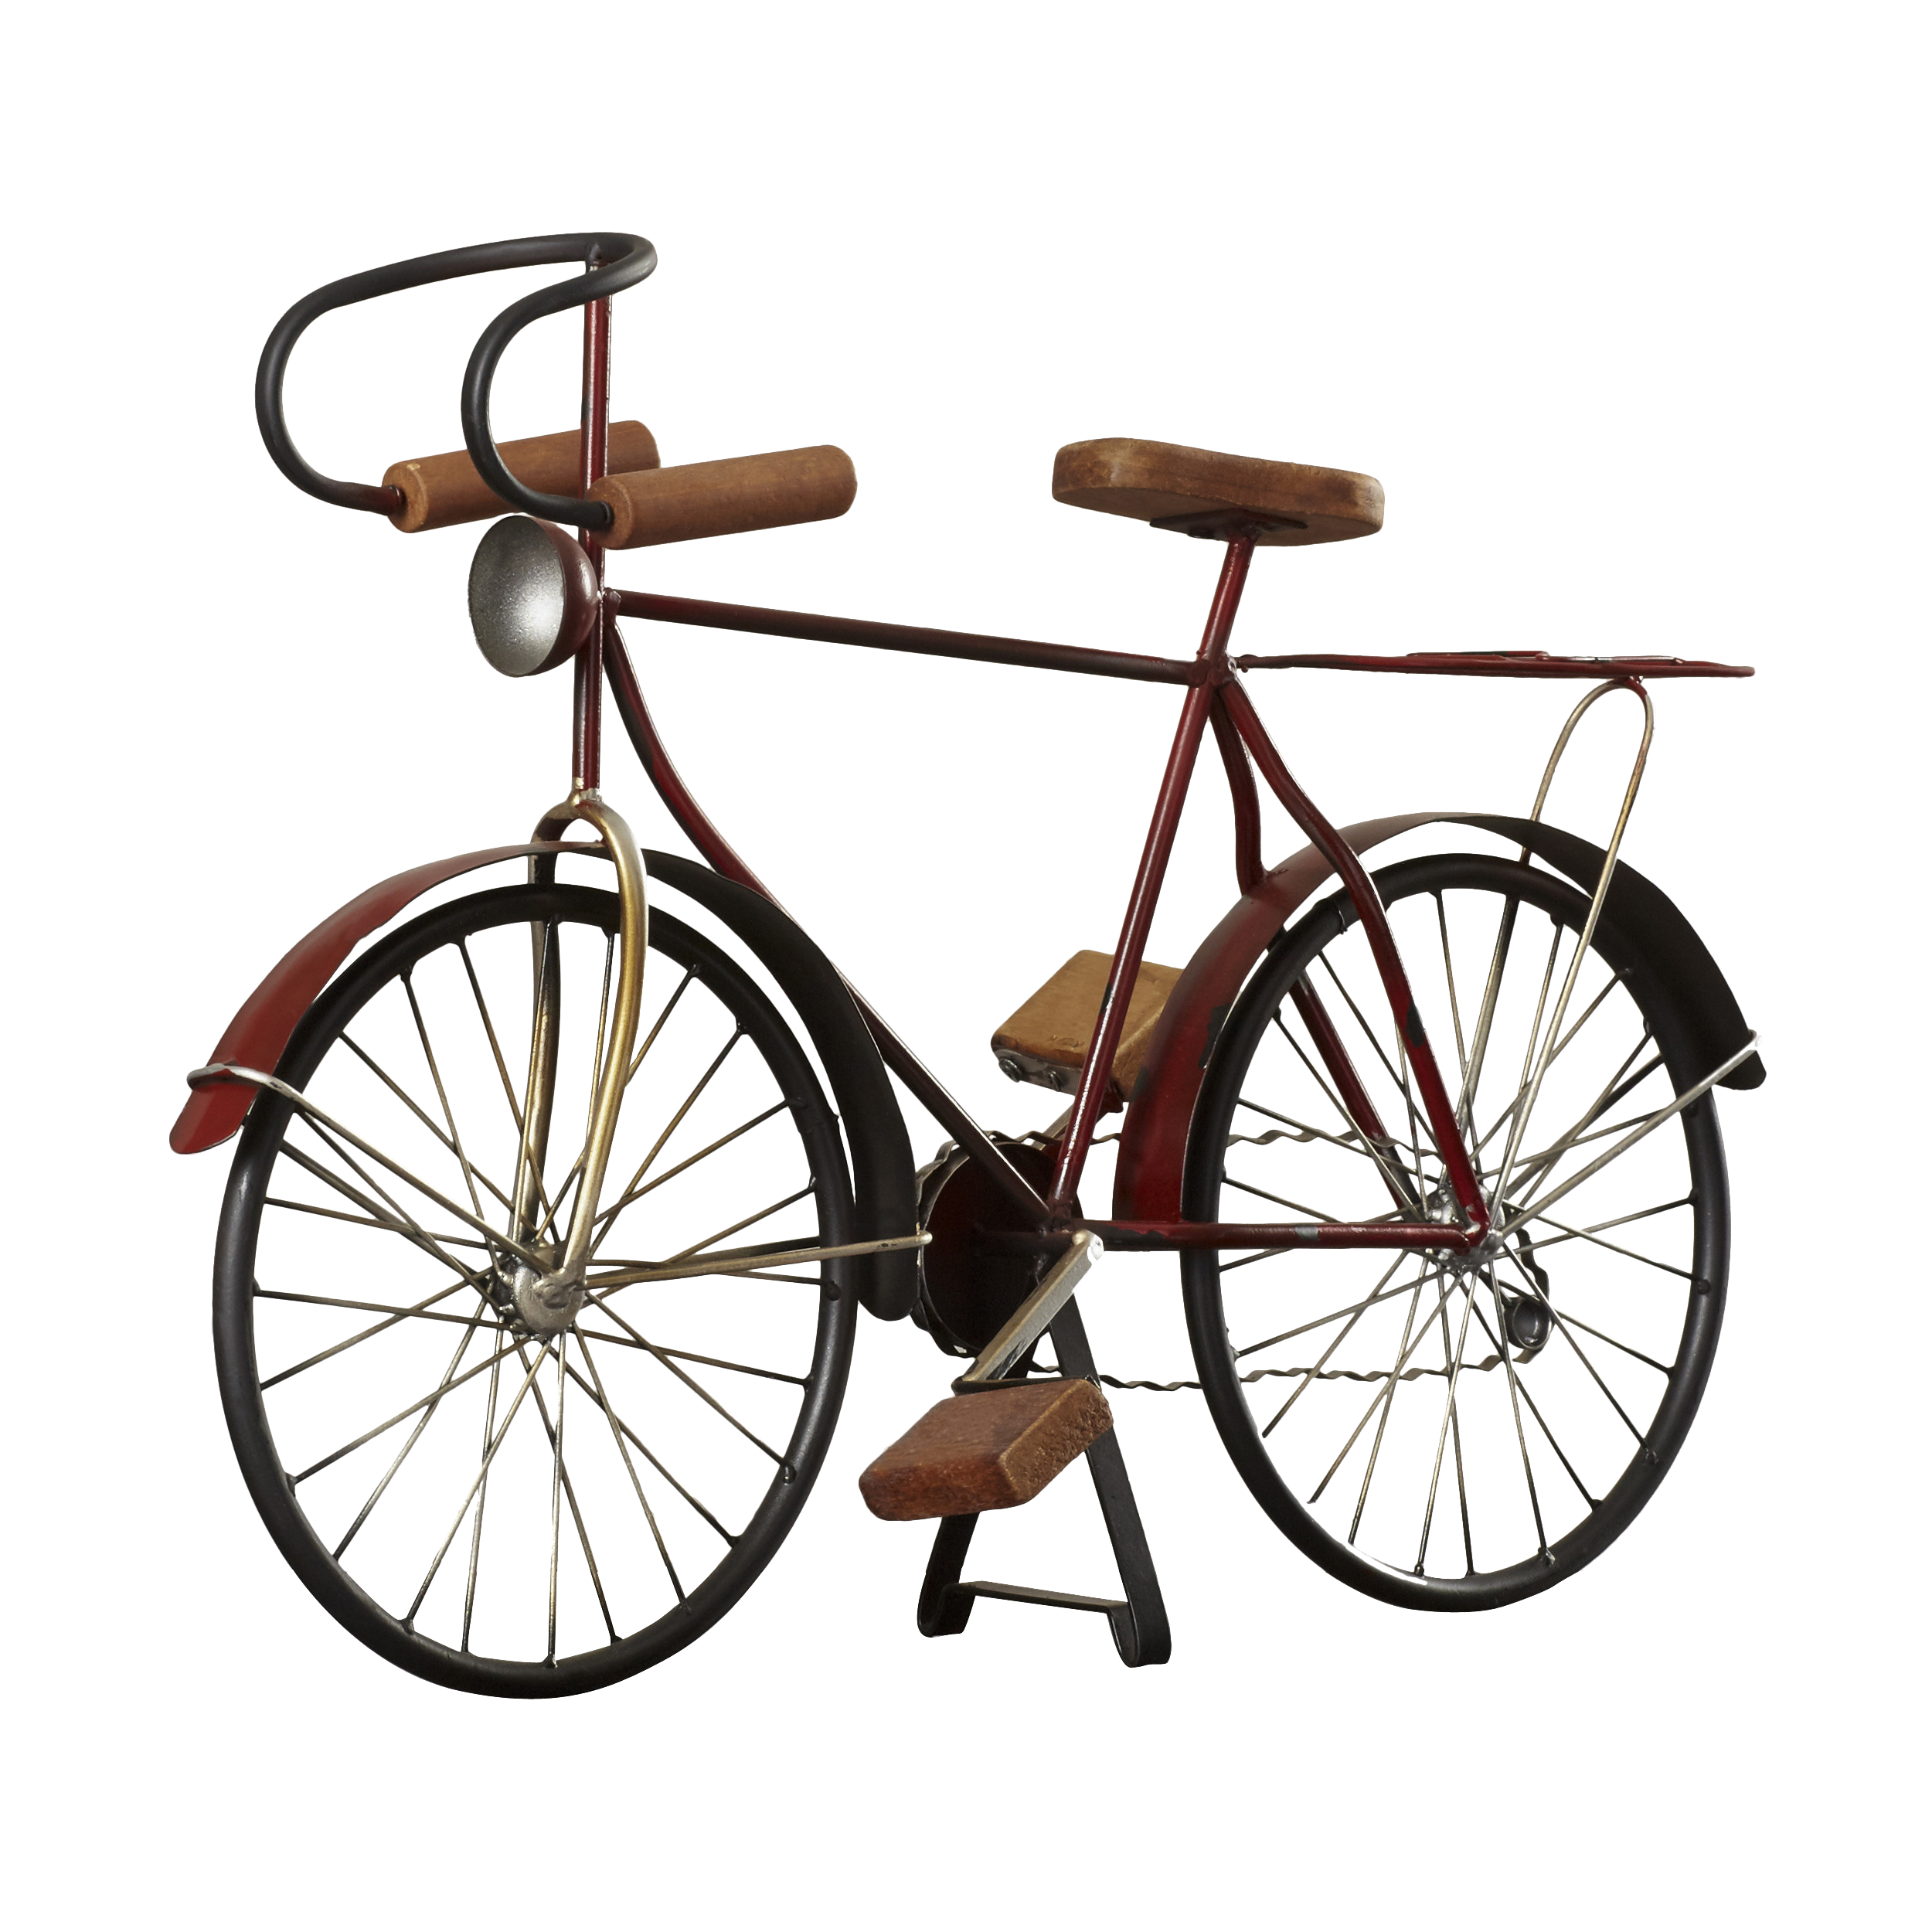 Metal-Wood-Bicycle-TADN2903.png